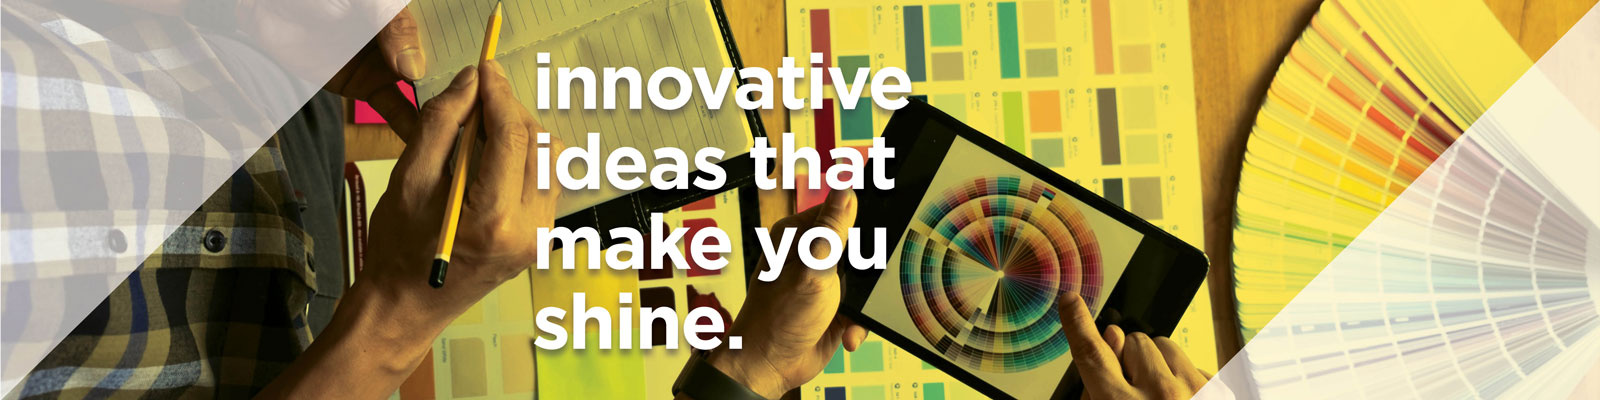 Design Services. Innovative Ideas That Make You Shine.